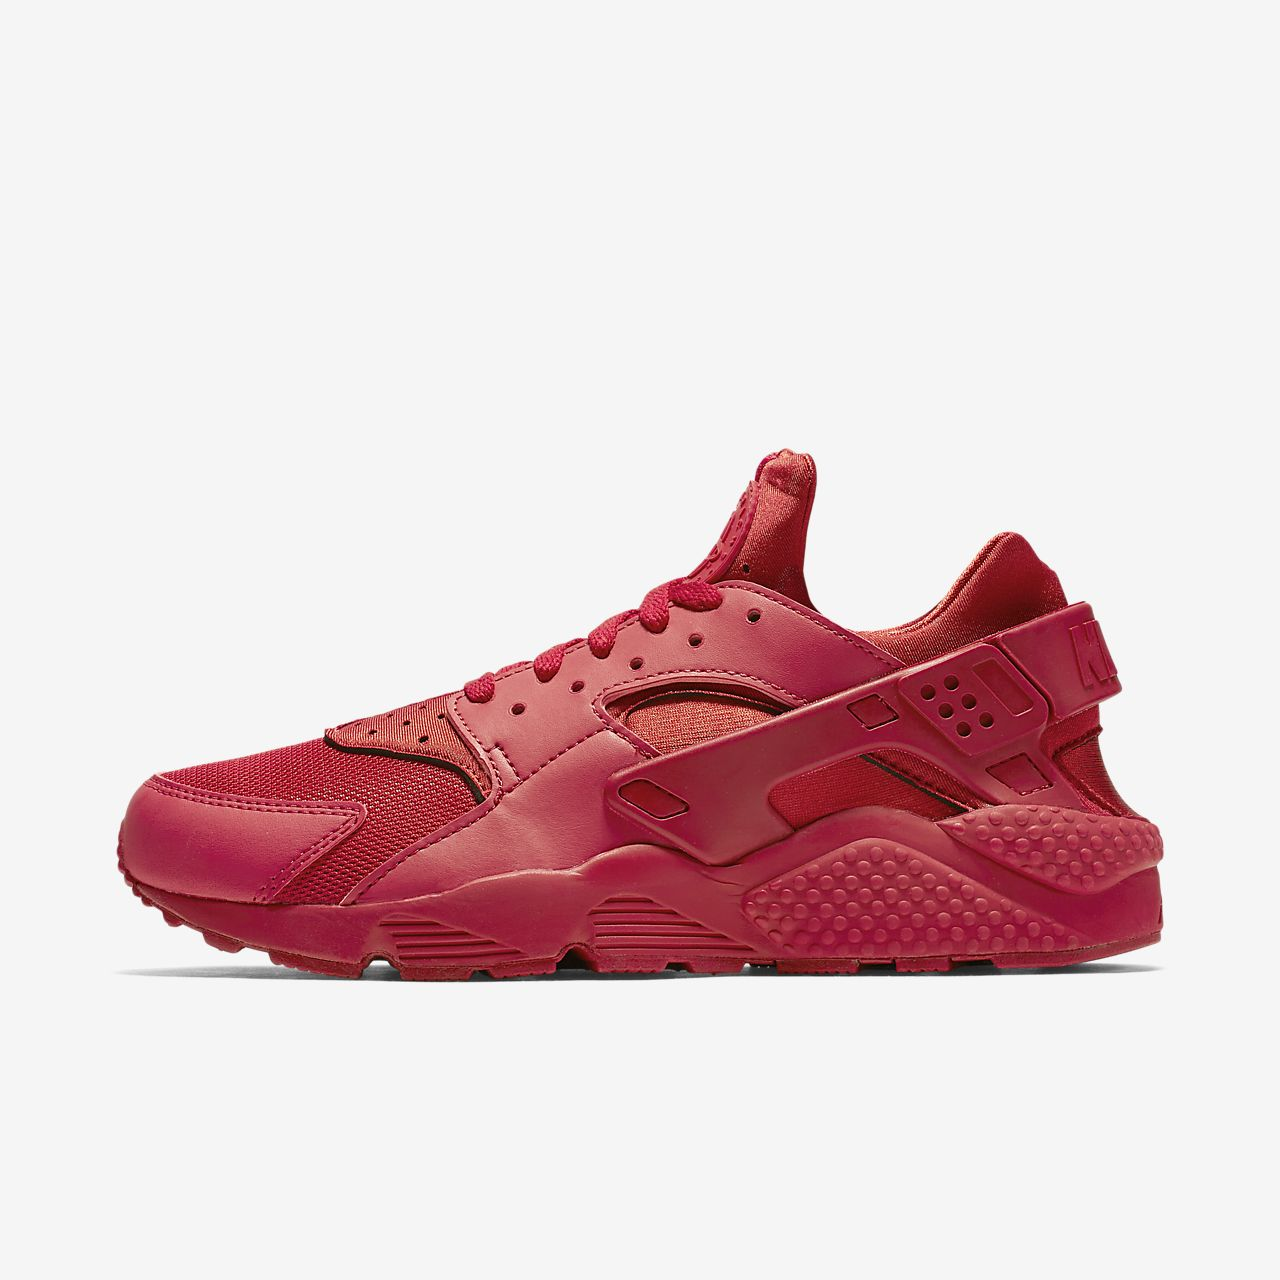 95e03e4fe3ba Nike Air Huarache Men s Shoe. Nike.com